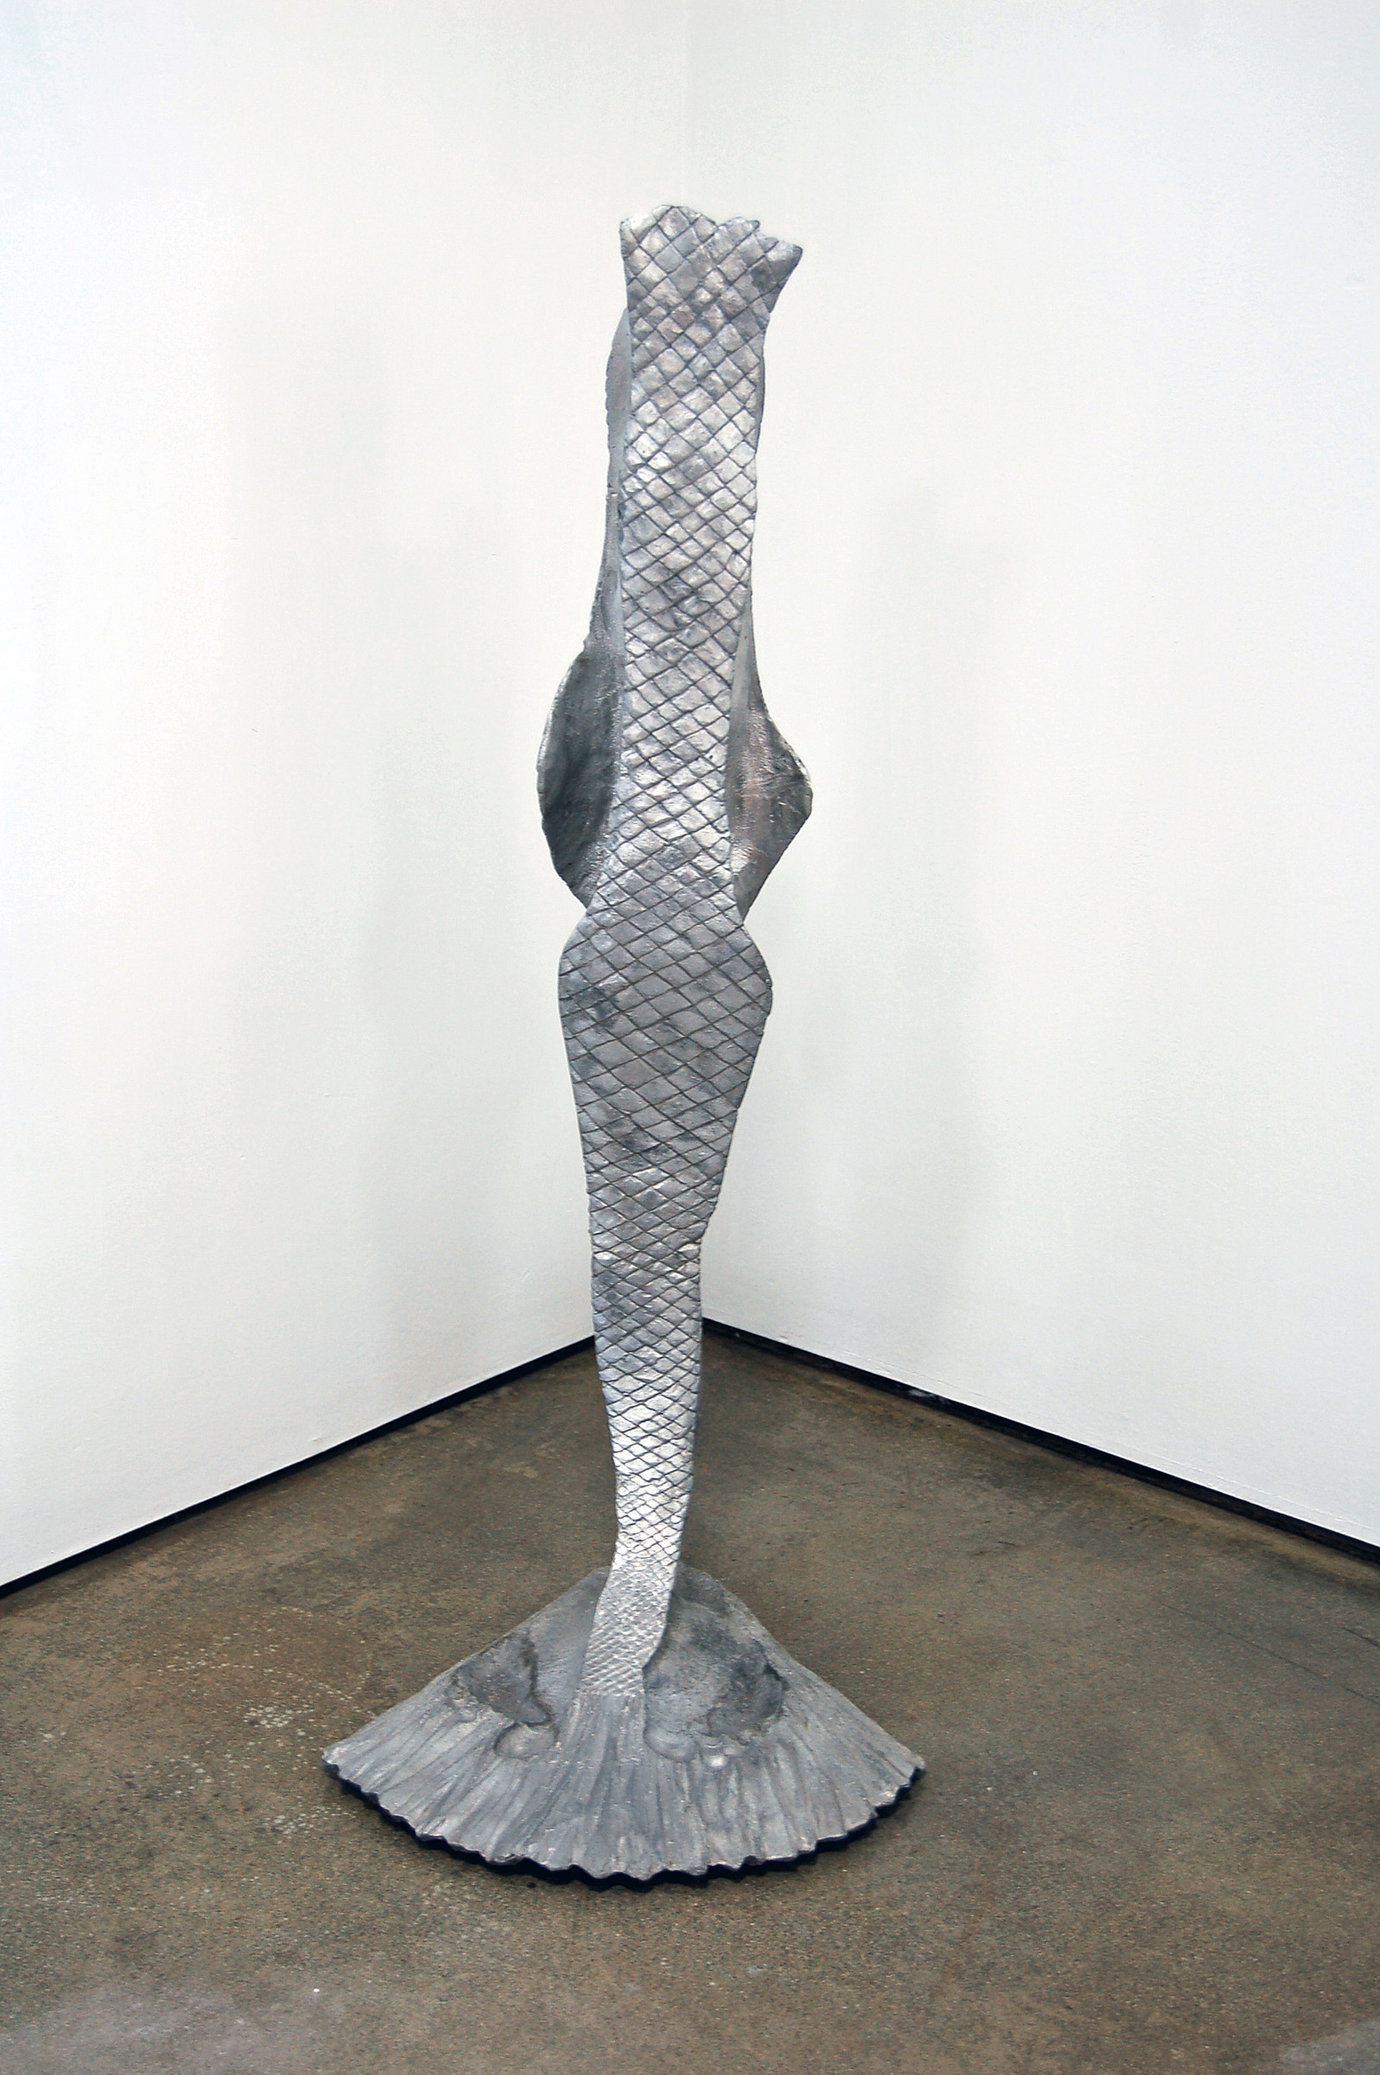 ", 1995. Aluminum, 36"" x 15"" x 15"" (91.4 cm x 38.1 cm x 38.1 cm)."